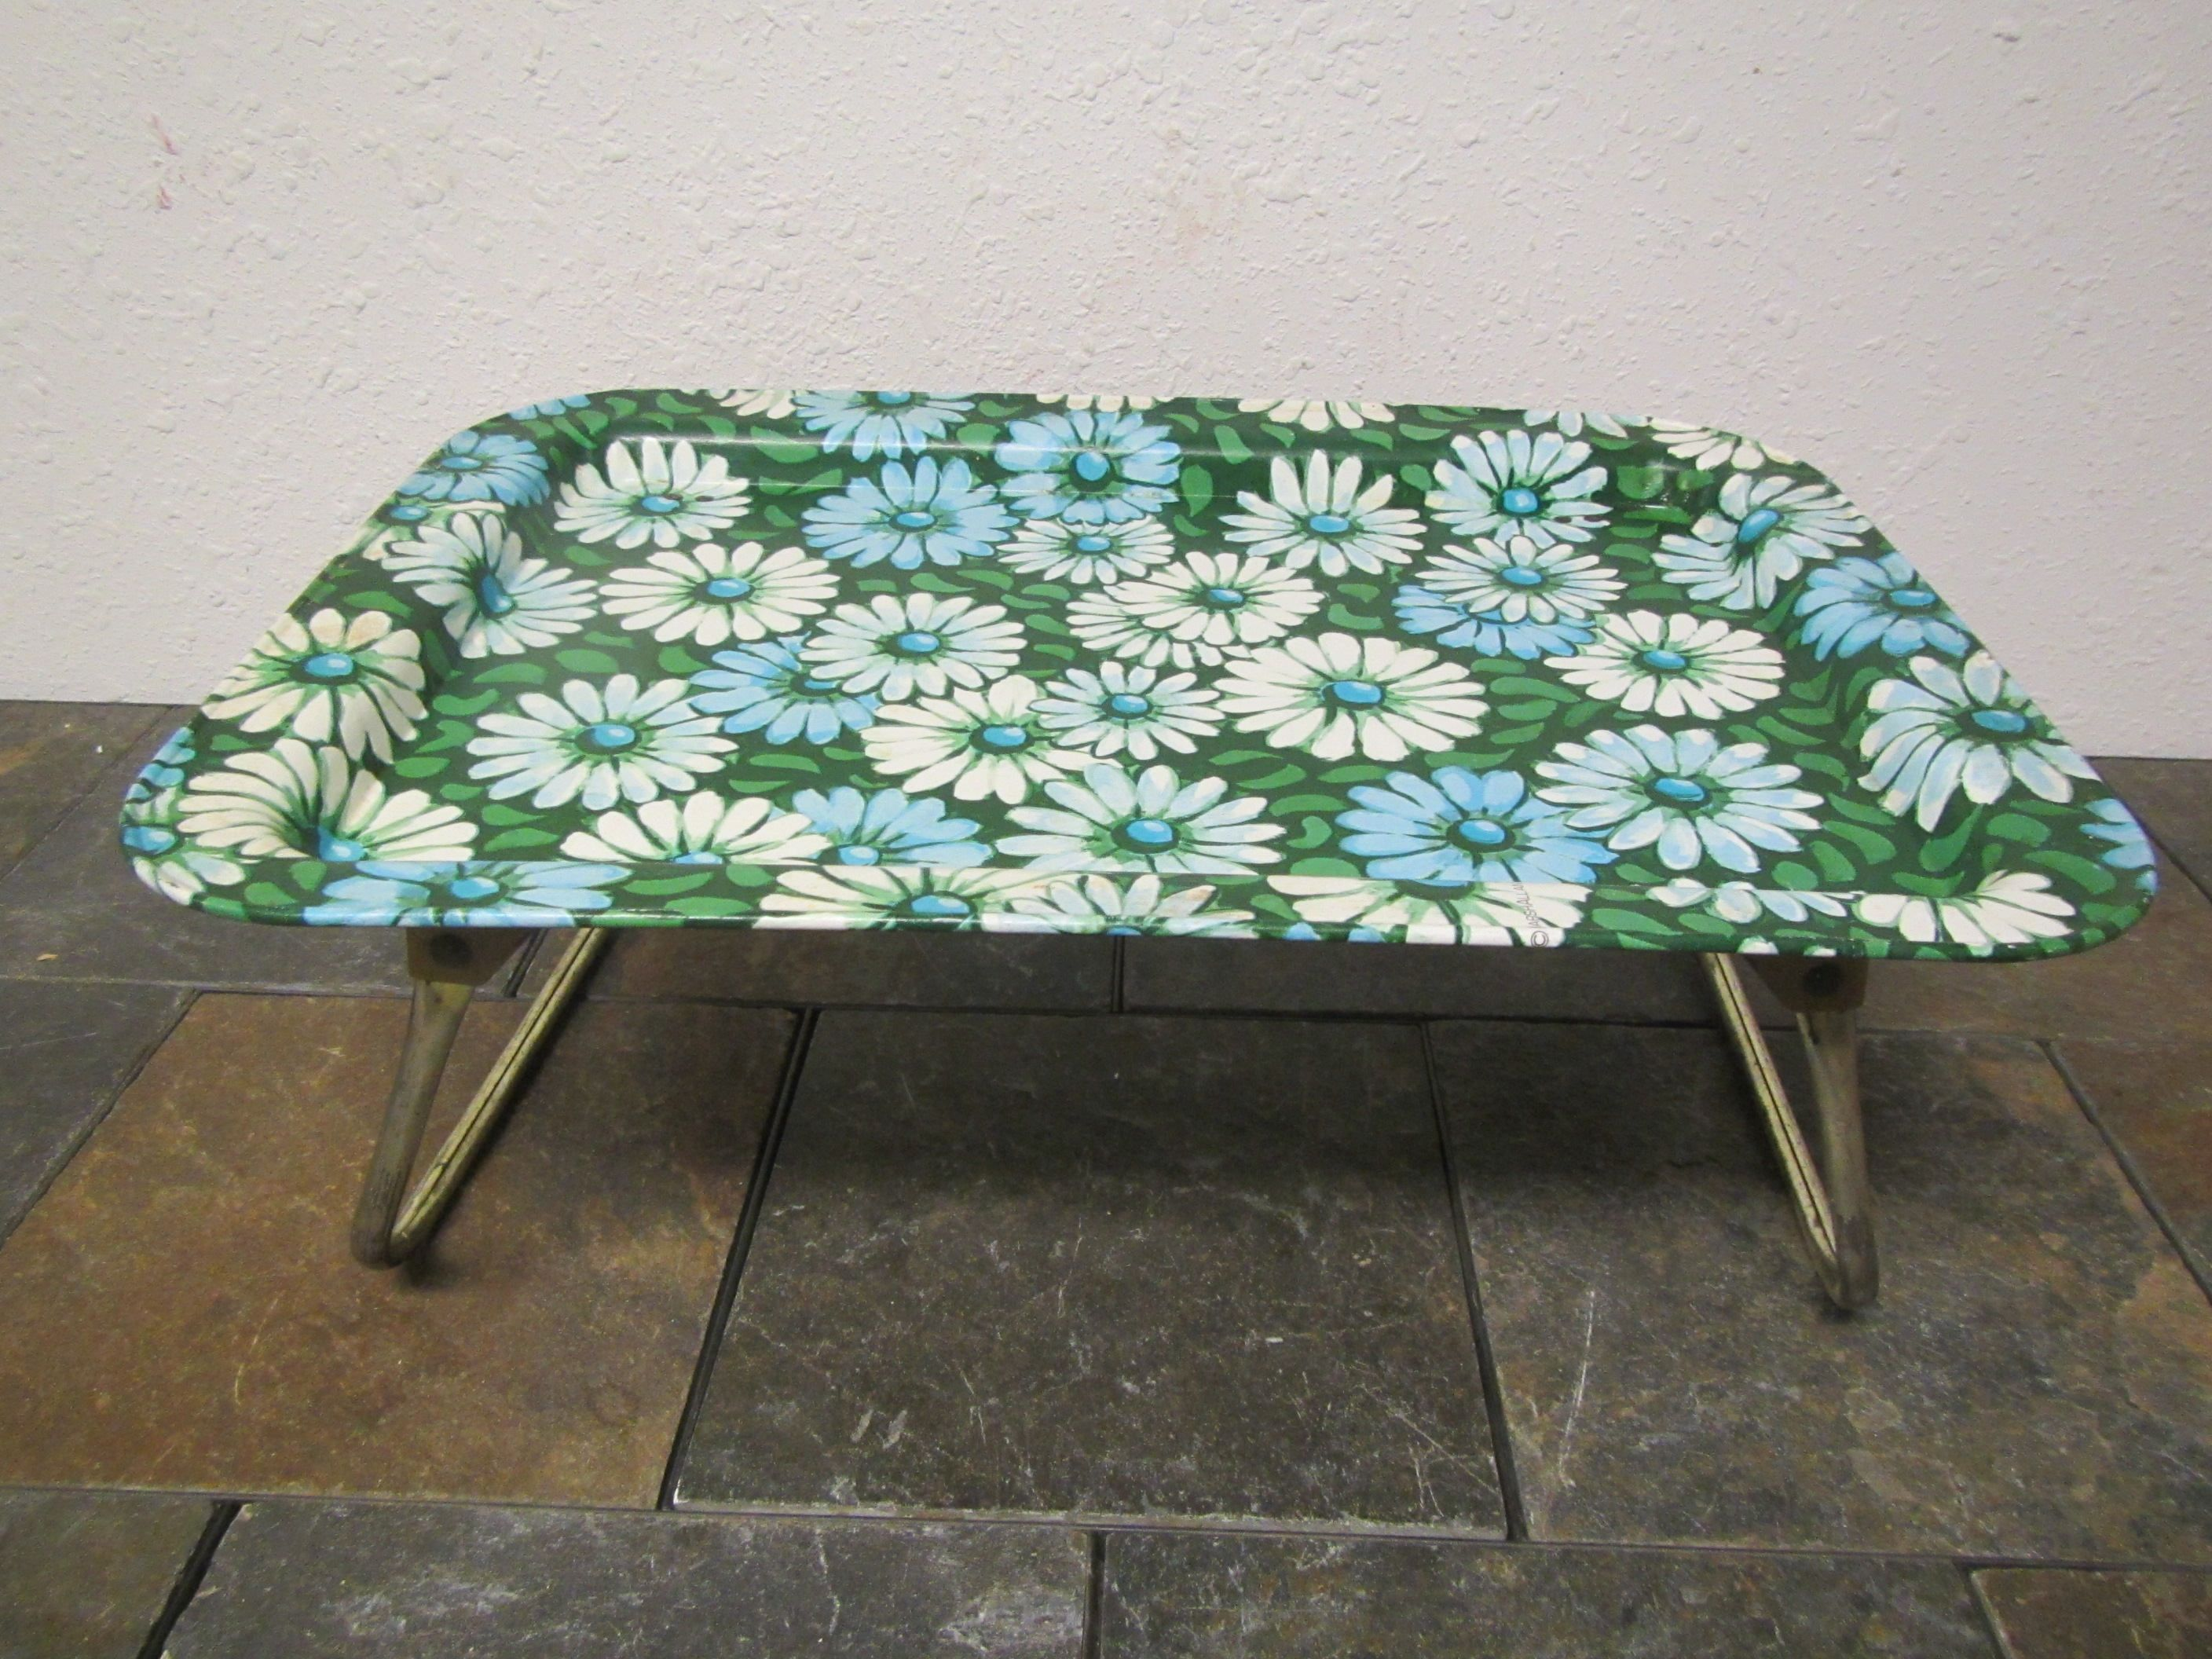 Metal Tv Lap Tray With Folding Legs Floral Design Green Blue And White Flower Pattern Breakfast In Bed Tray By Mau Bed Tray Lap Tray Breakfast In Bed